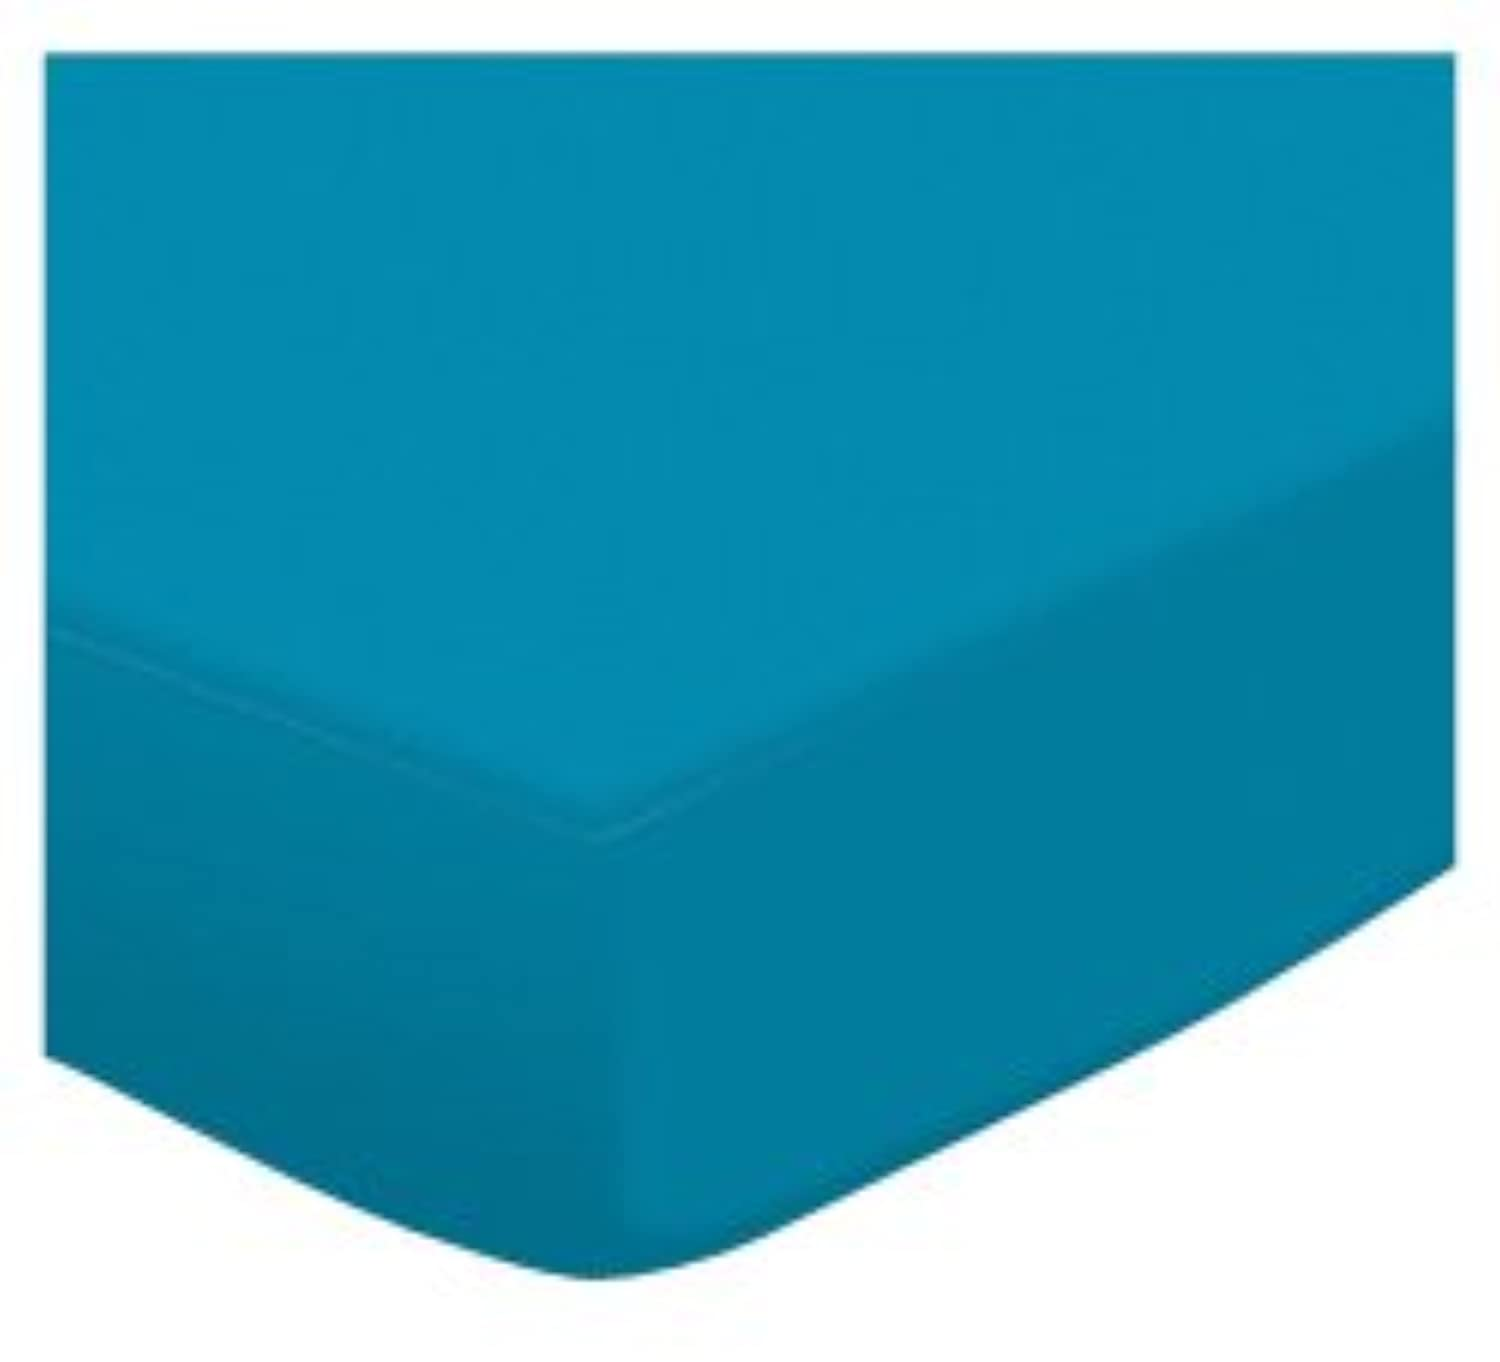 SheetWorld Extra Deep Fitted Portable / Mini Crib Sheet - Turquoise Jersey Knit - Made In USA by sheetworld